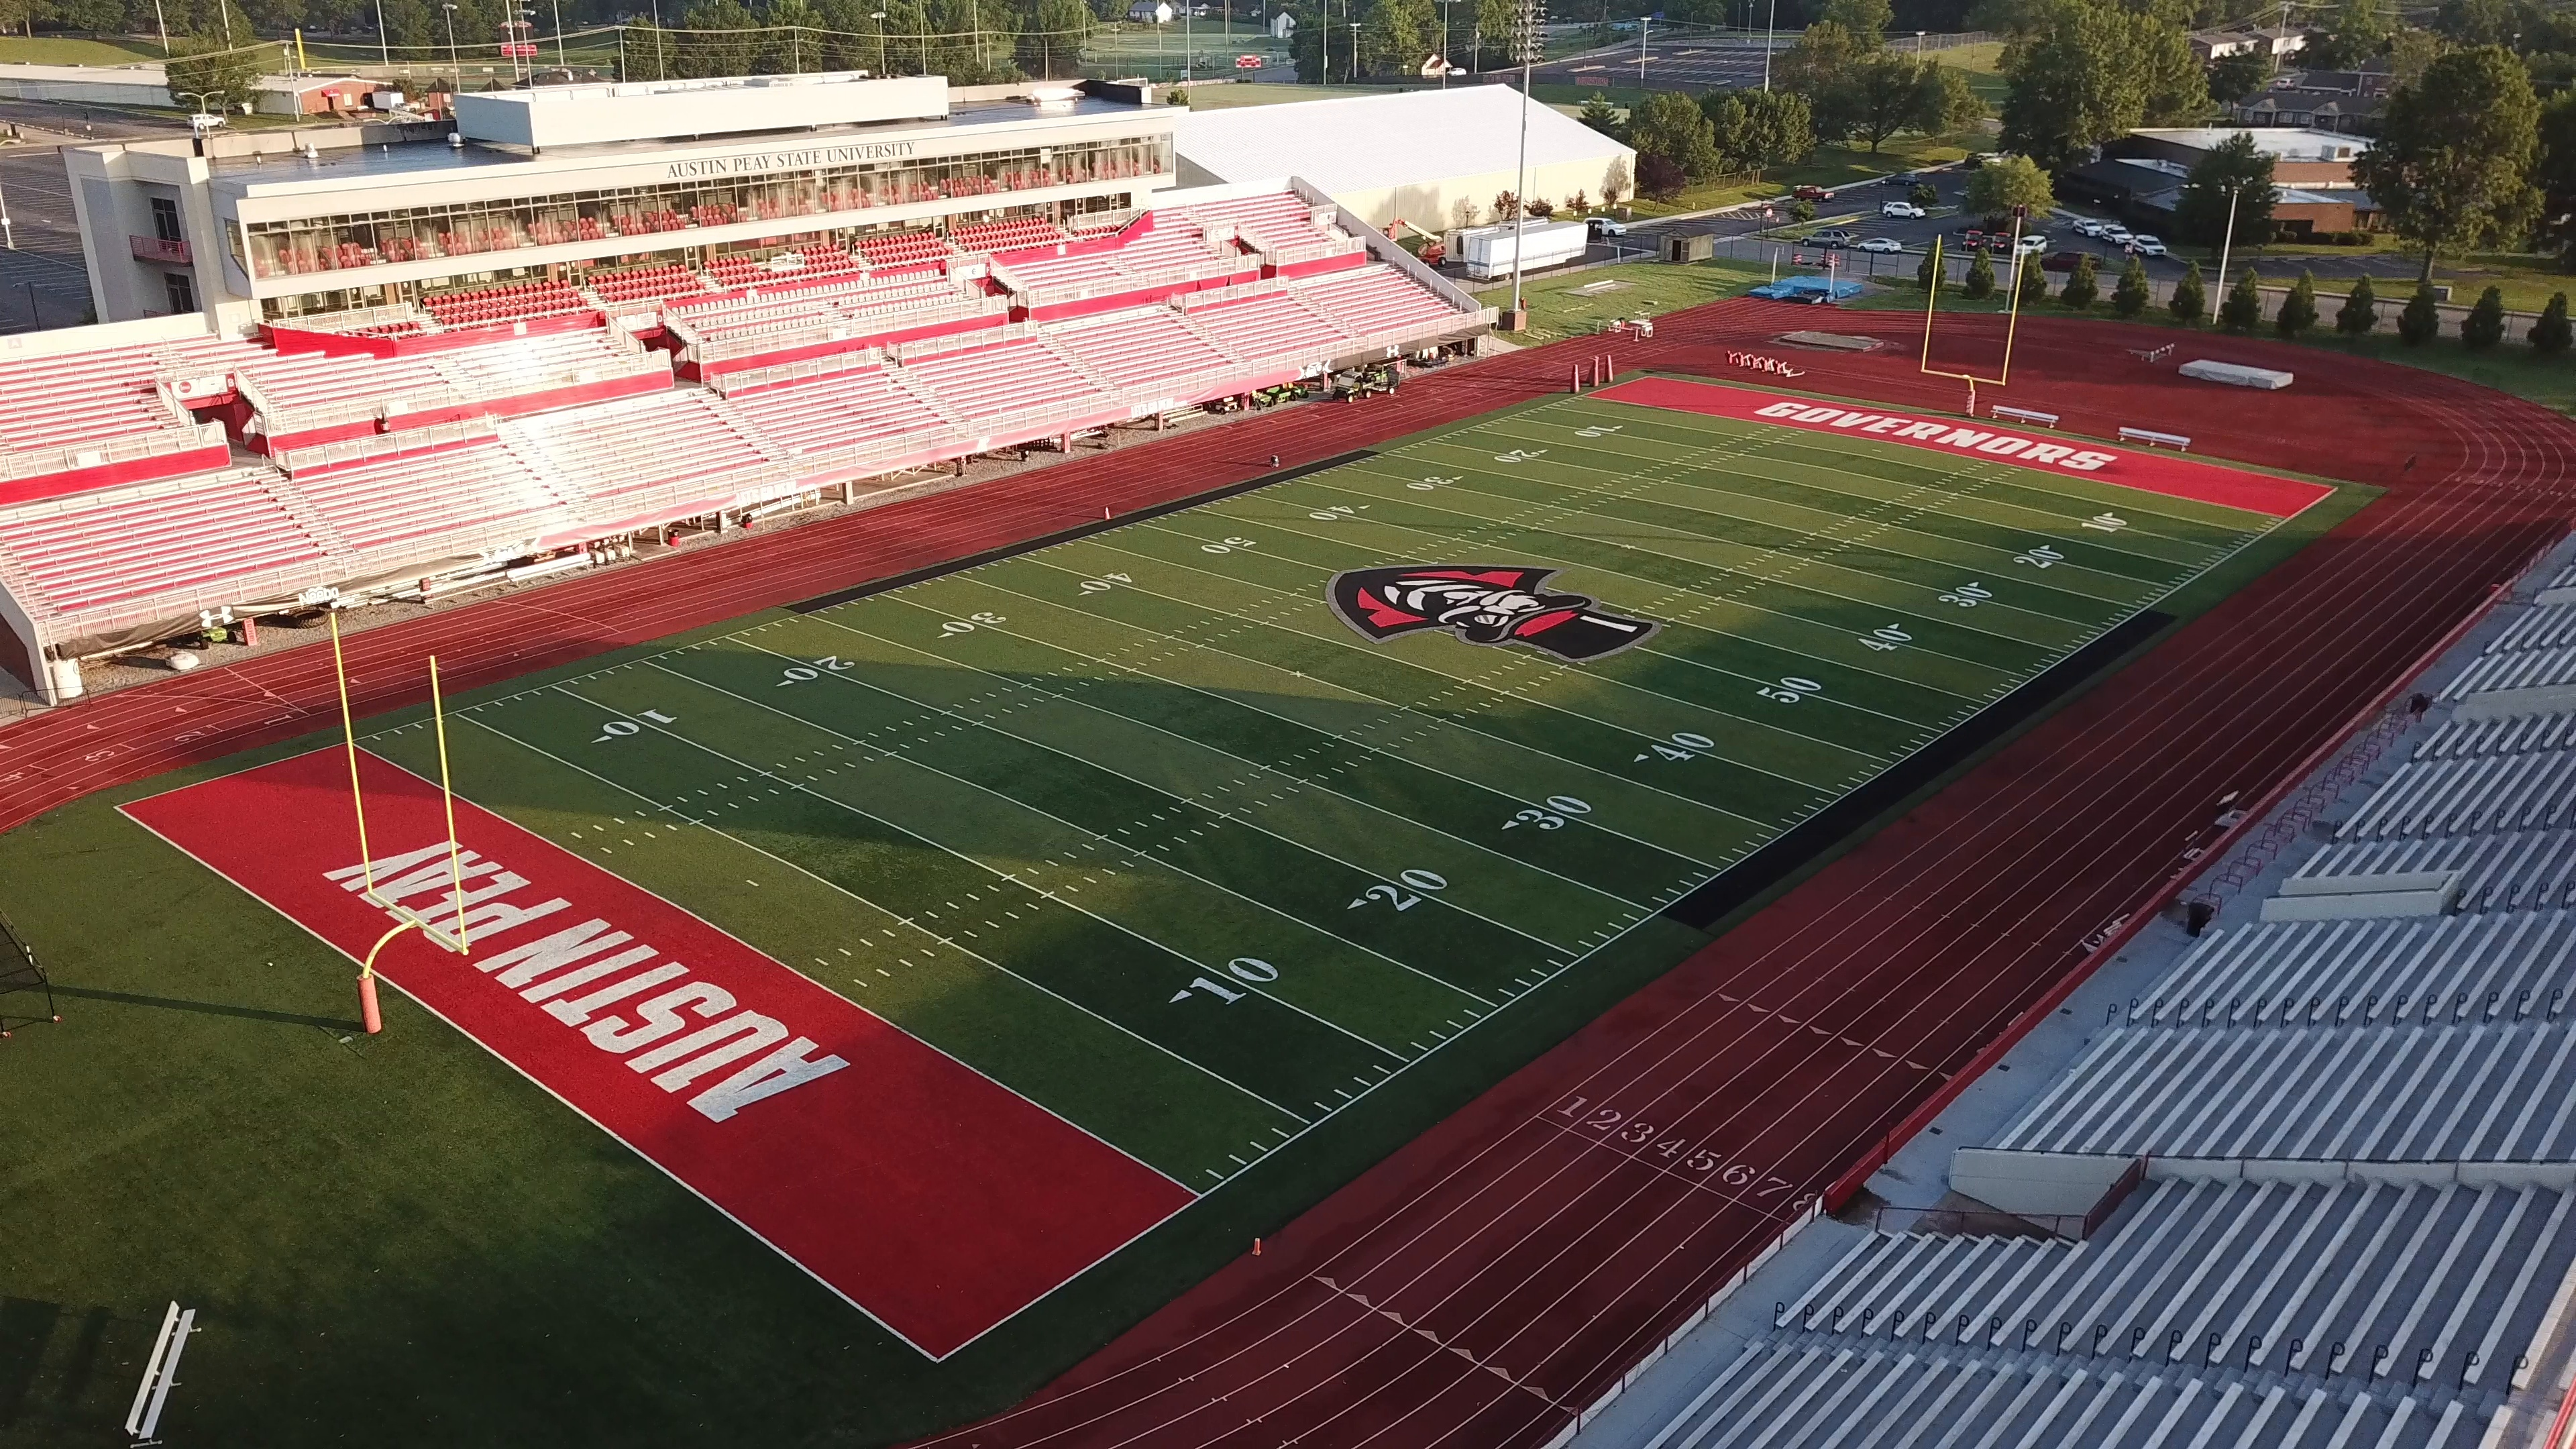 APSU Football Stadium Clarksville,TN